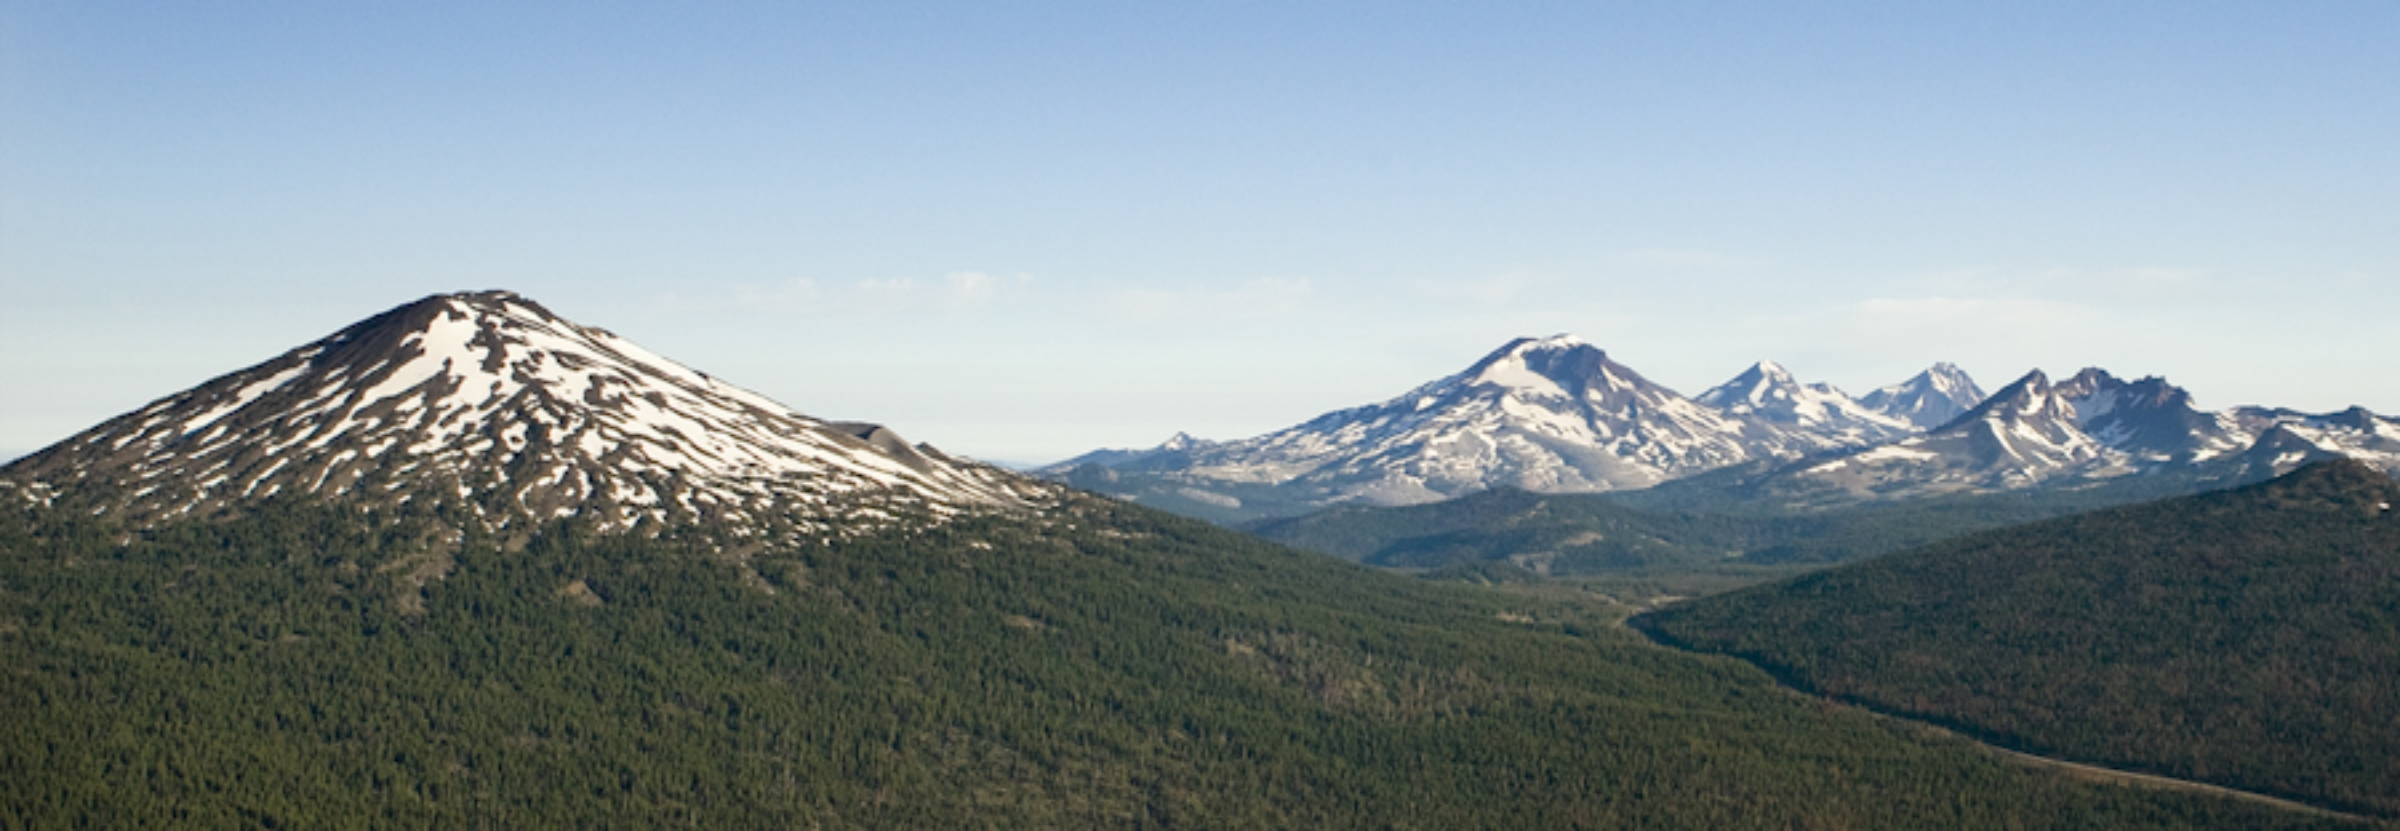 Mount Bachelor, Three Sisters and Broken Top in Central Oregon (USDA Forest Service)